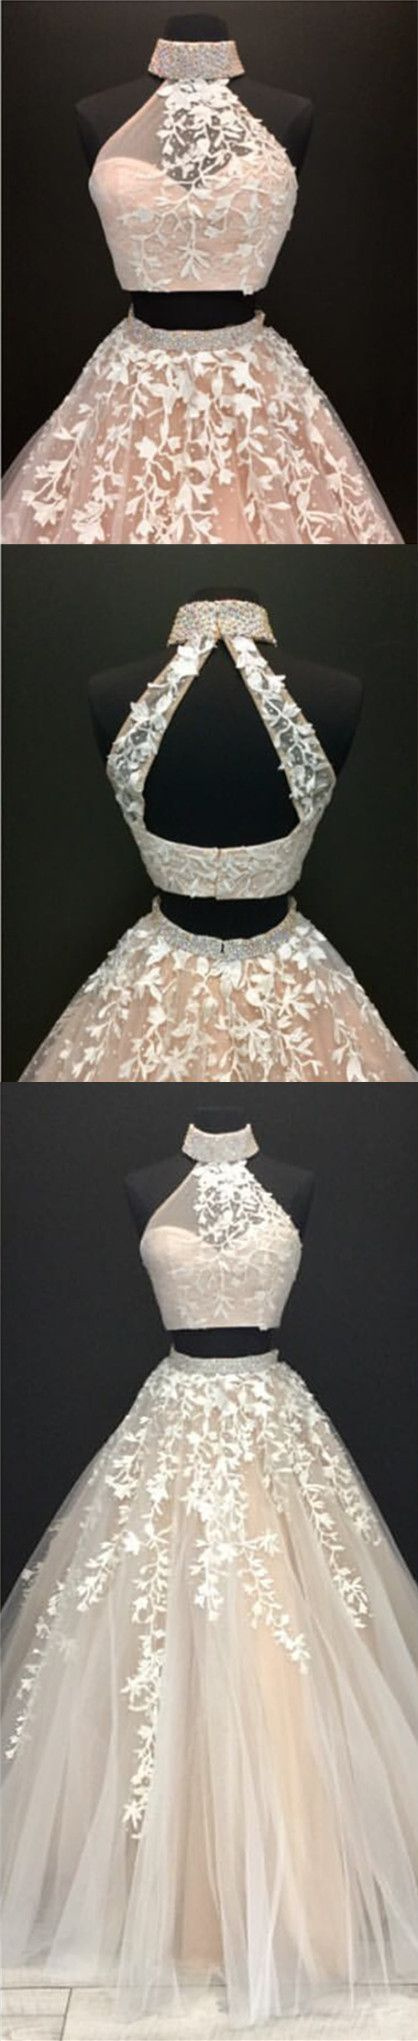 New arrival prom dresshigh neck open back lace embroidery ball